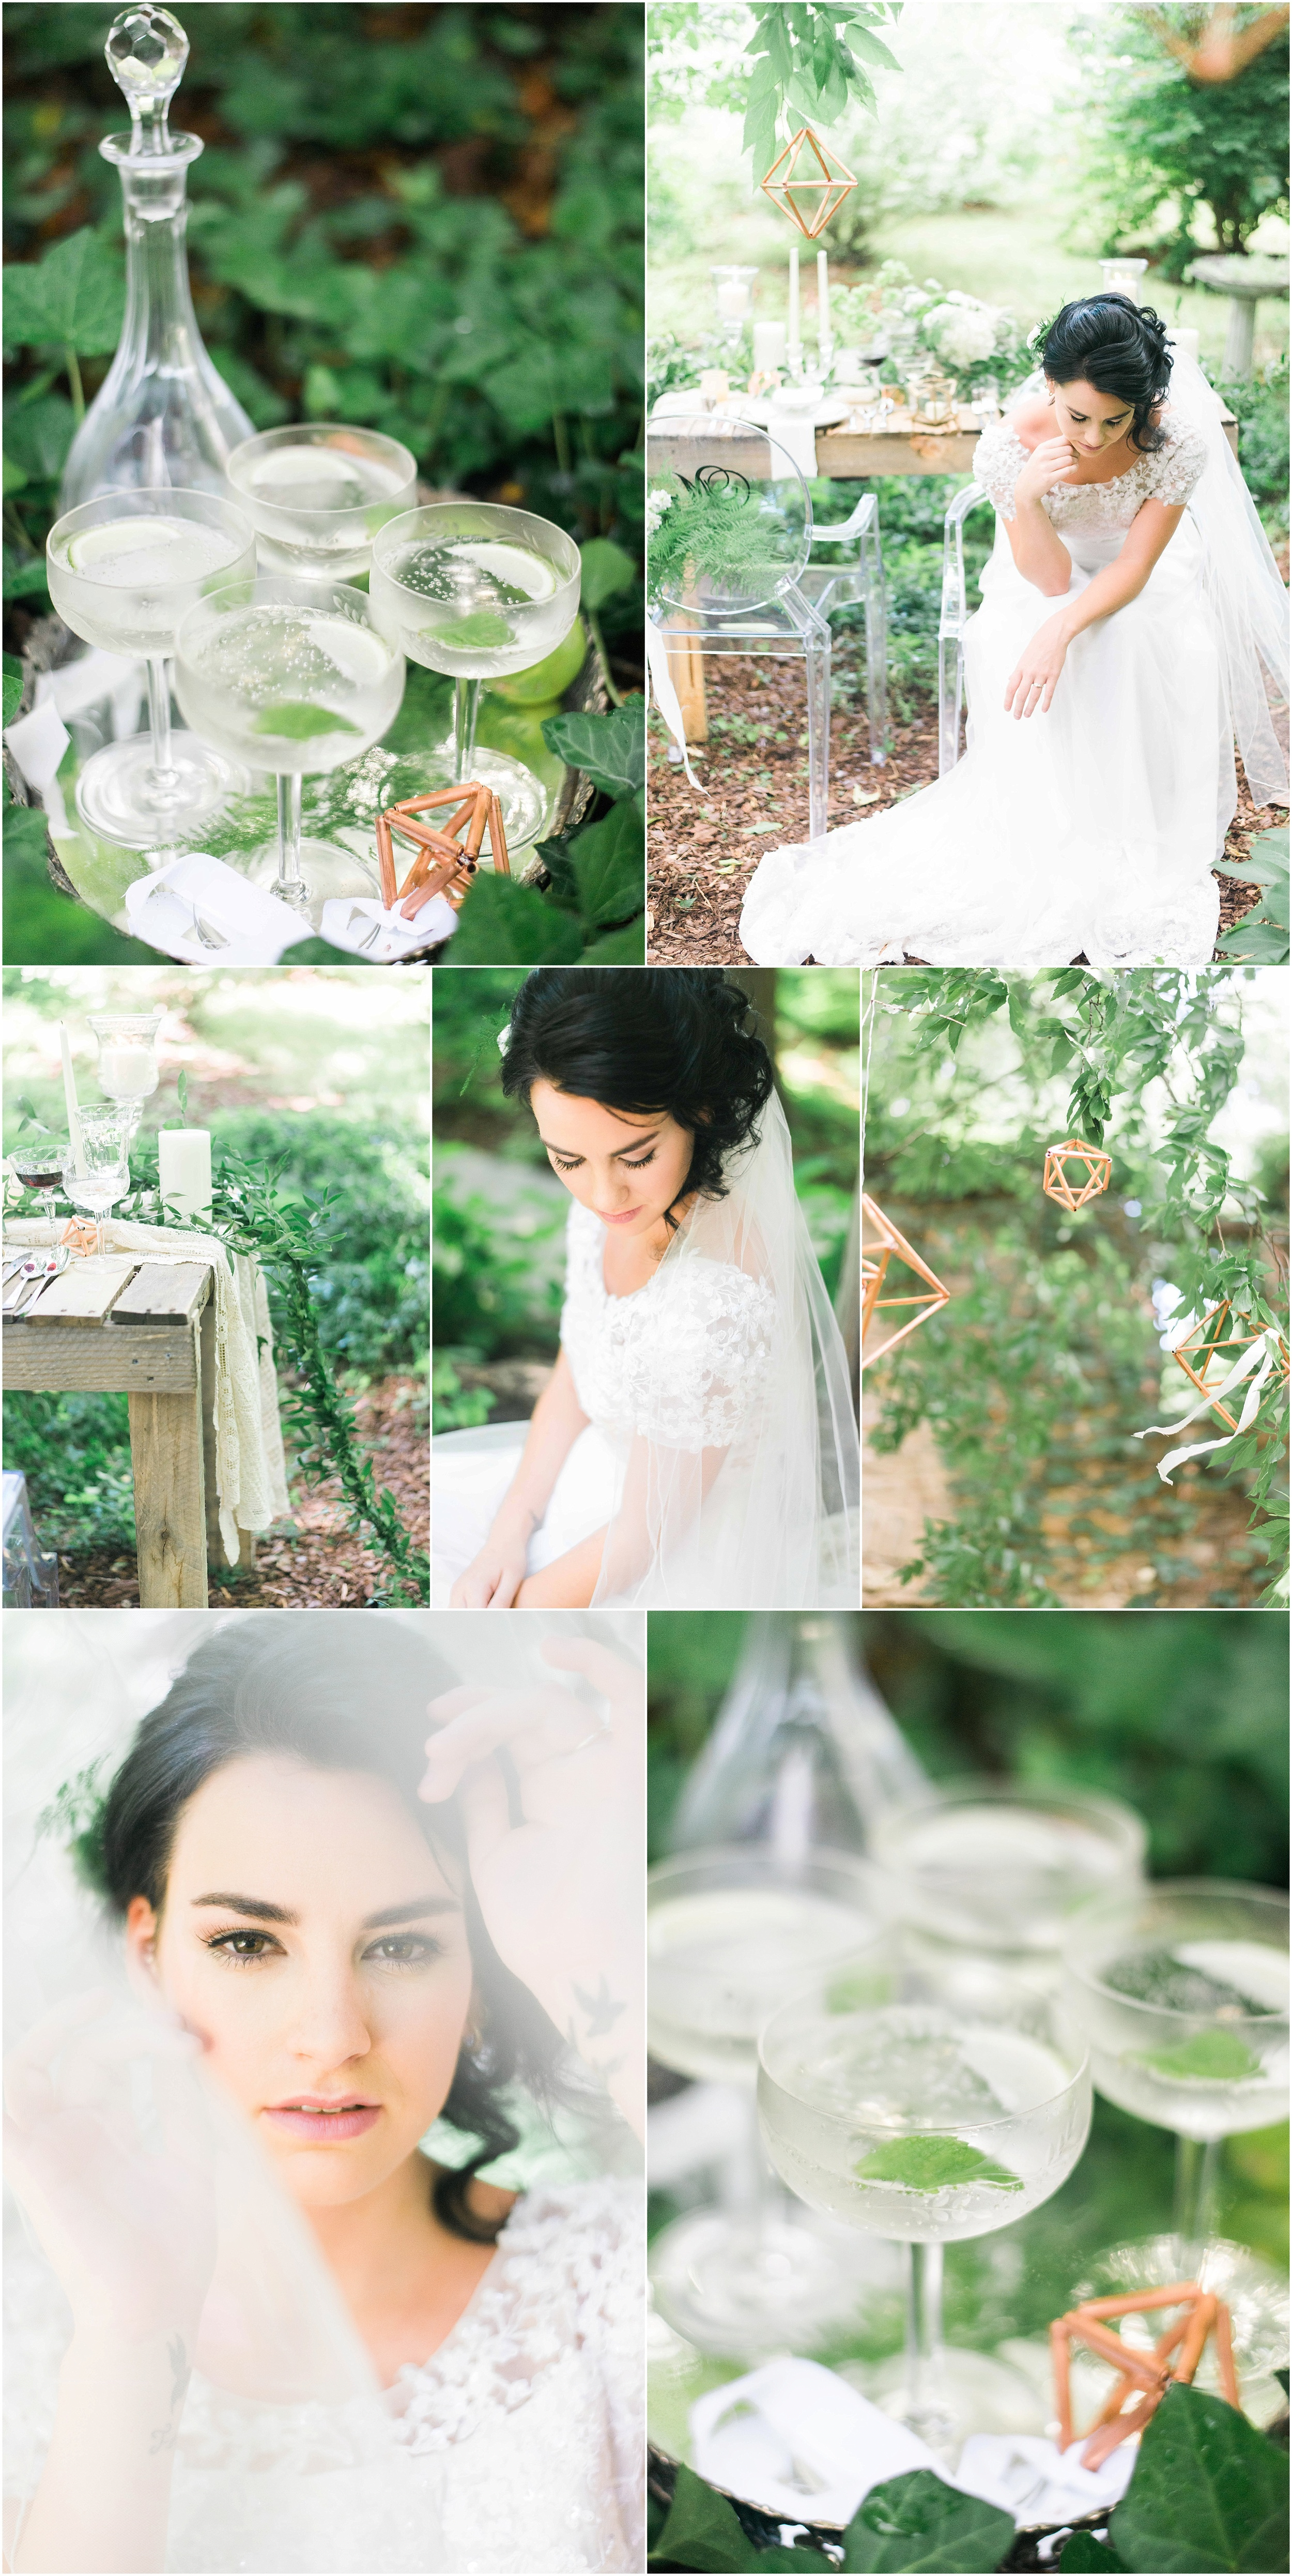 charlottesville_wedding Photographer_styled shoot_Style Me Pretty Feature9